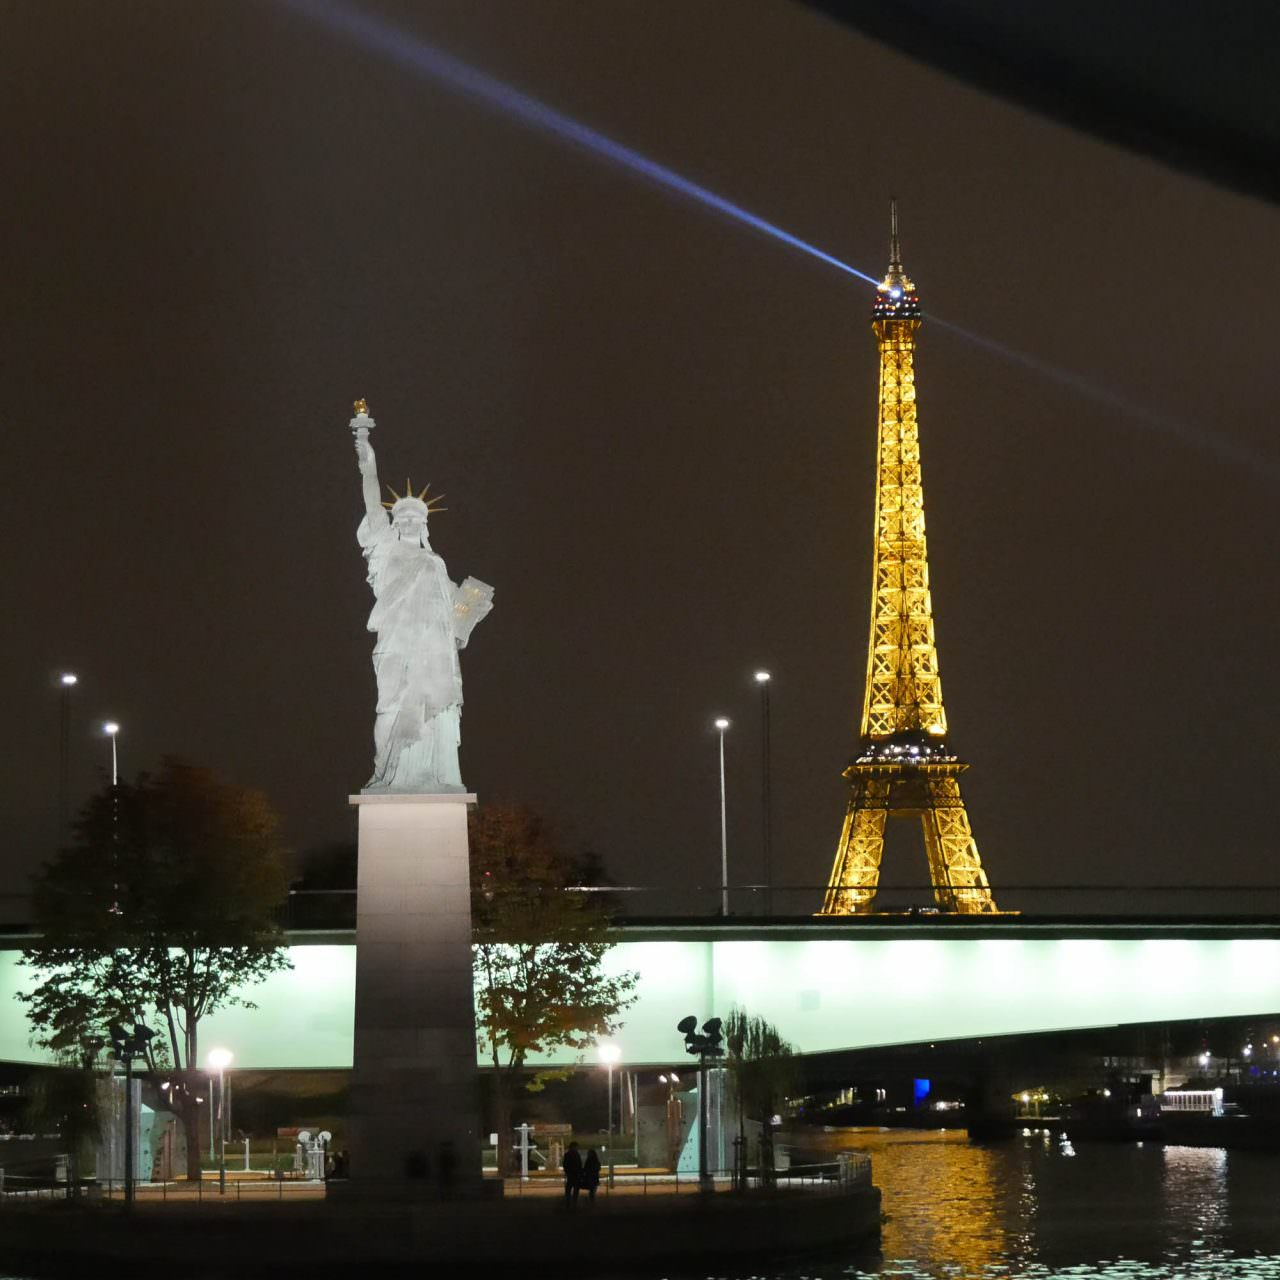 The captain maneuvered AmaLegro and spotlighted the Statue of Liberty before we sailed from Paris. ©2016 Ralph Grizzle